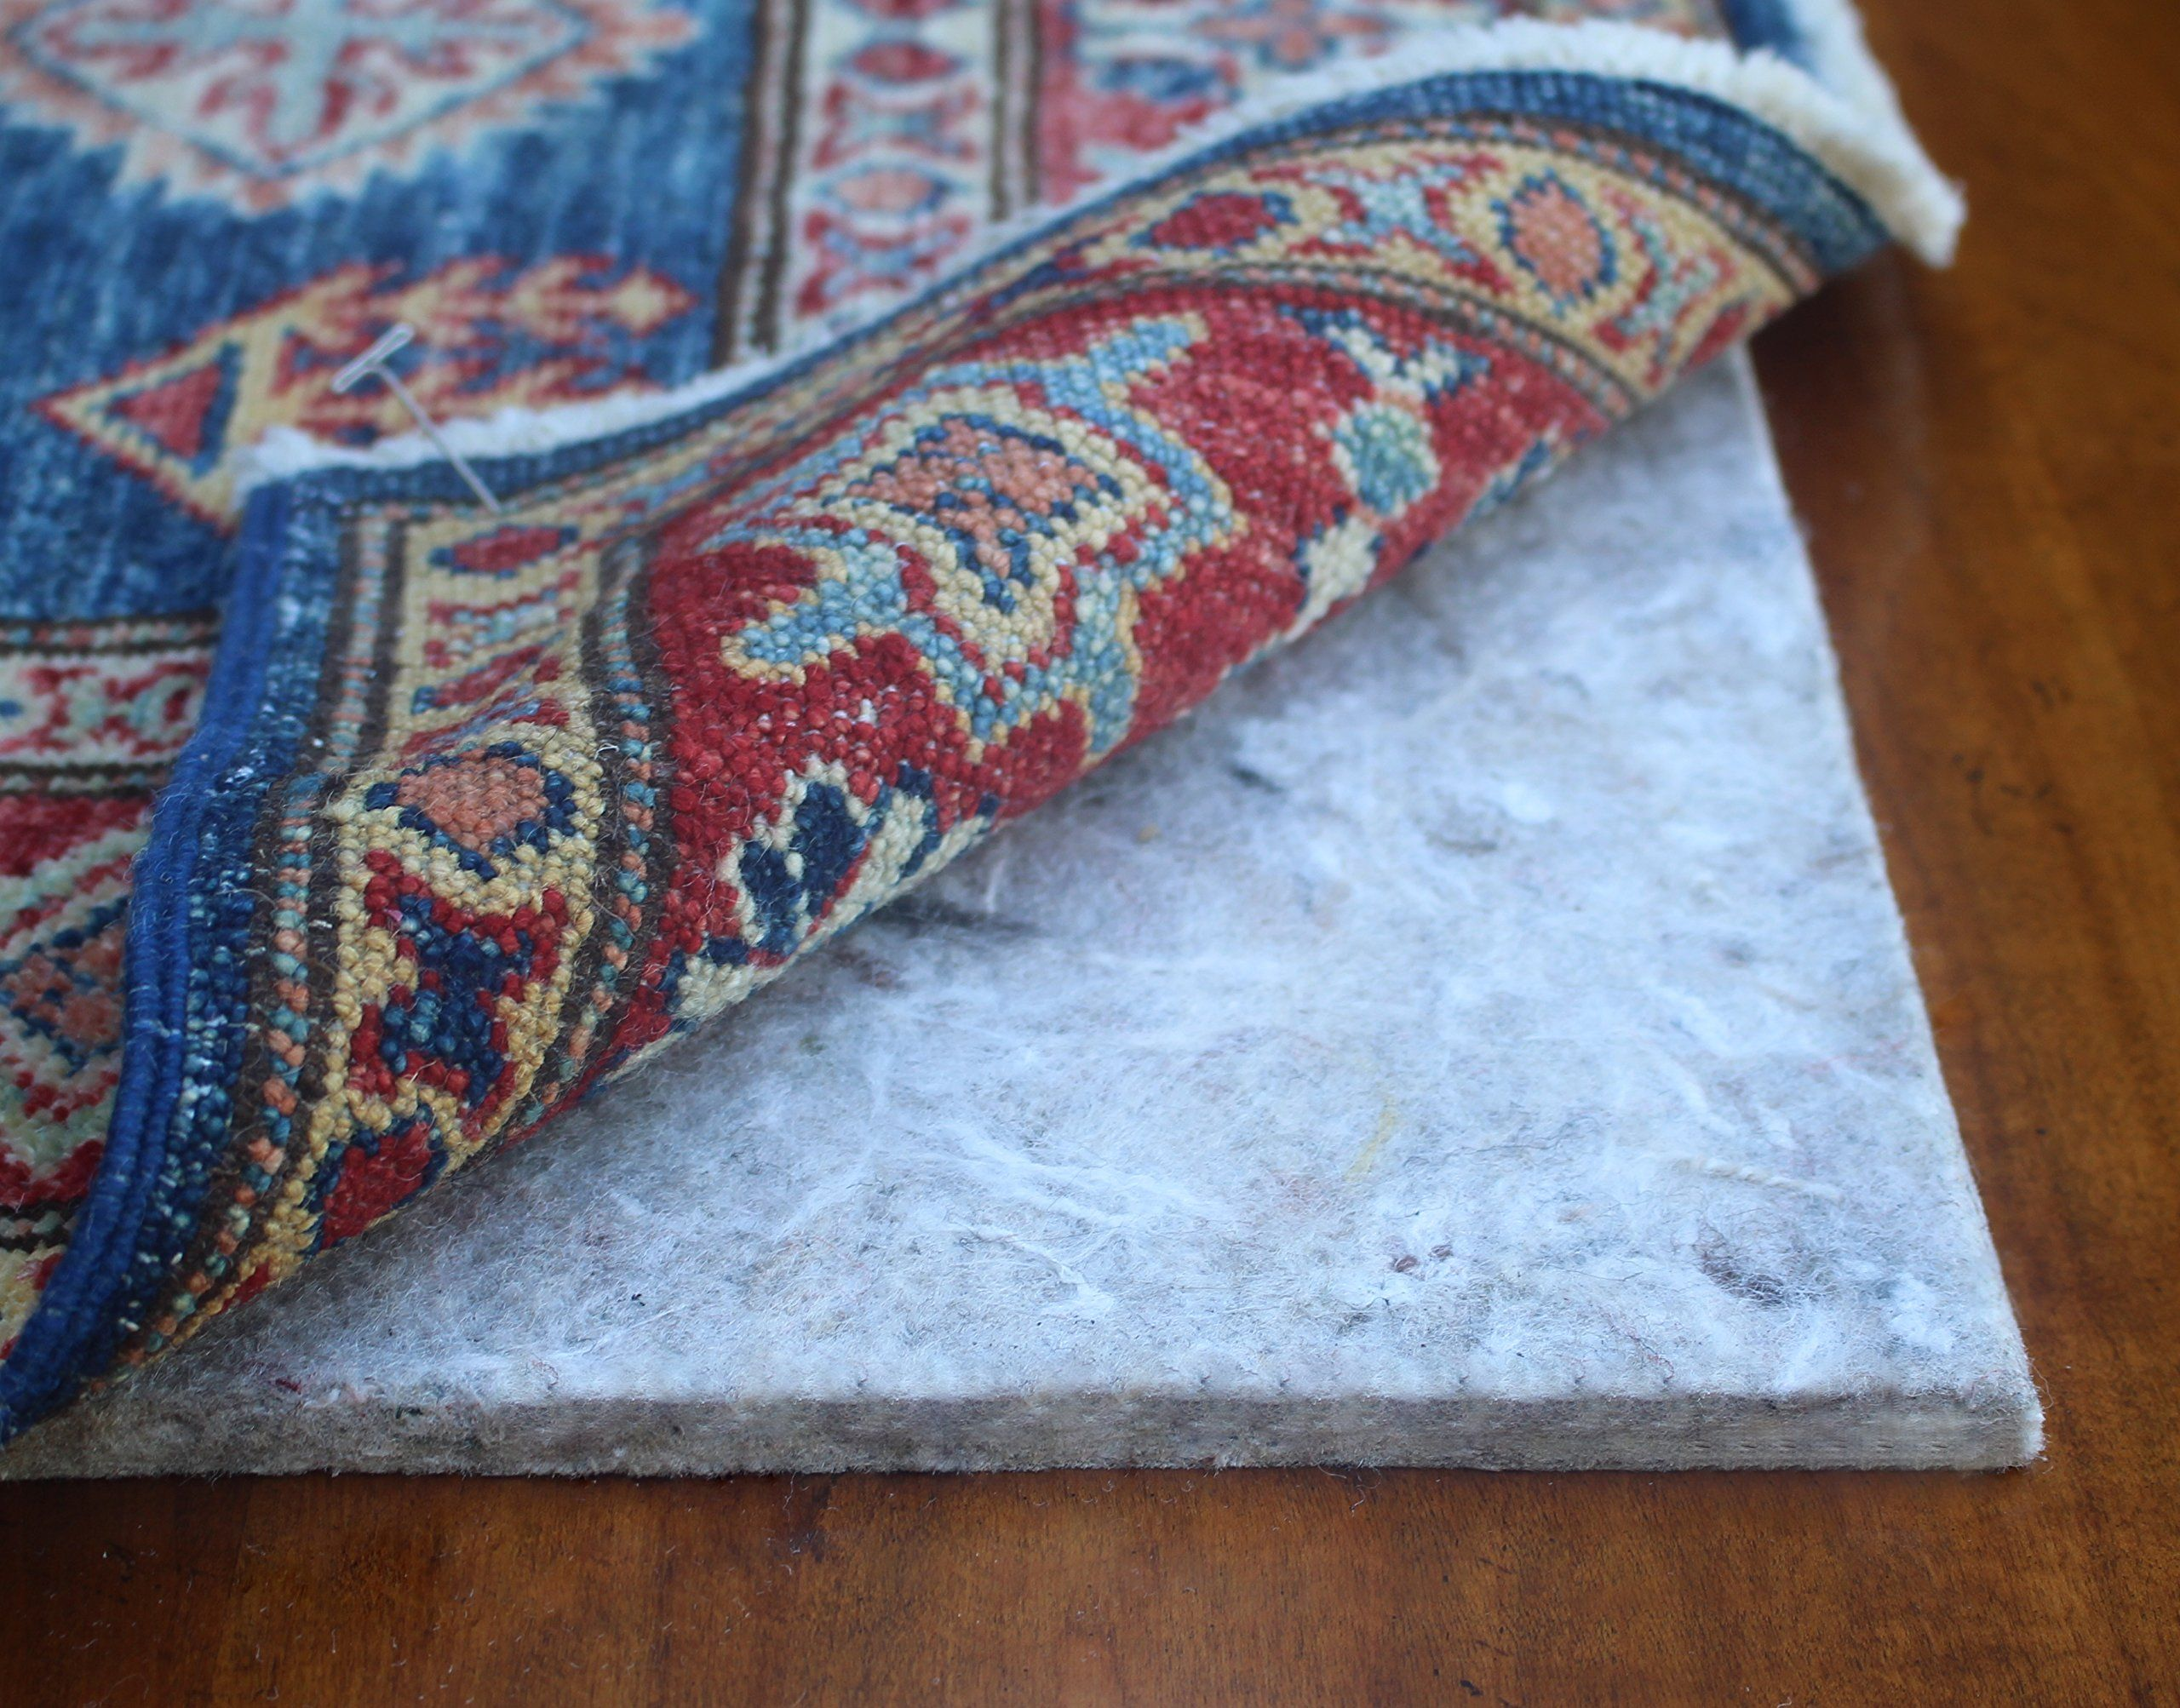 Rug Pad Usa 1 4 Thickness 4x6 Eco Plush Felt Rug Pads Preserve Rug Protect Floor Click On The Image For Additional Rugs Decorative Pillows